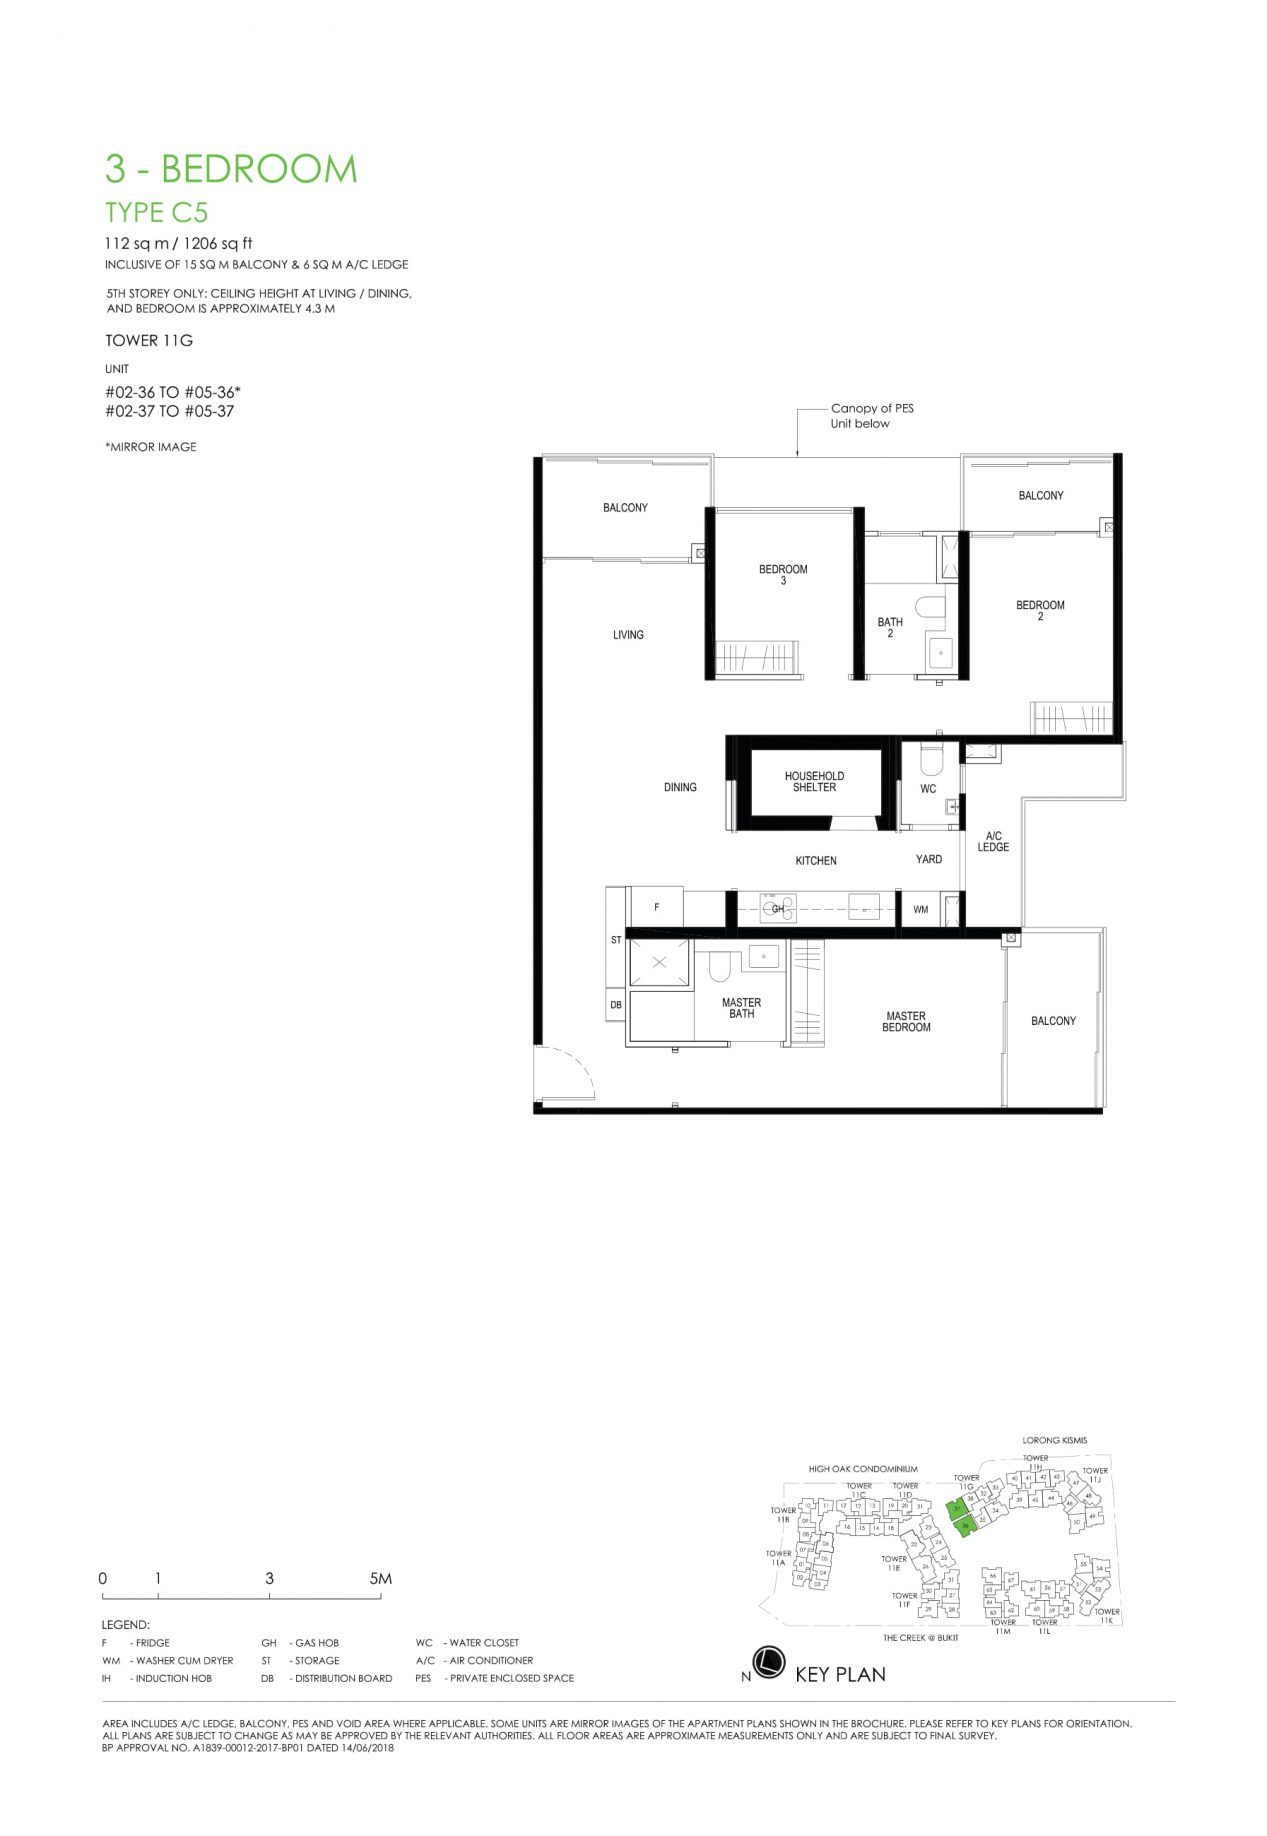 Daintree Residence's three-bedroom types